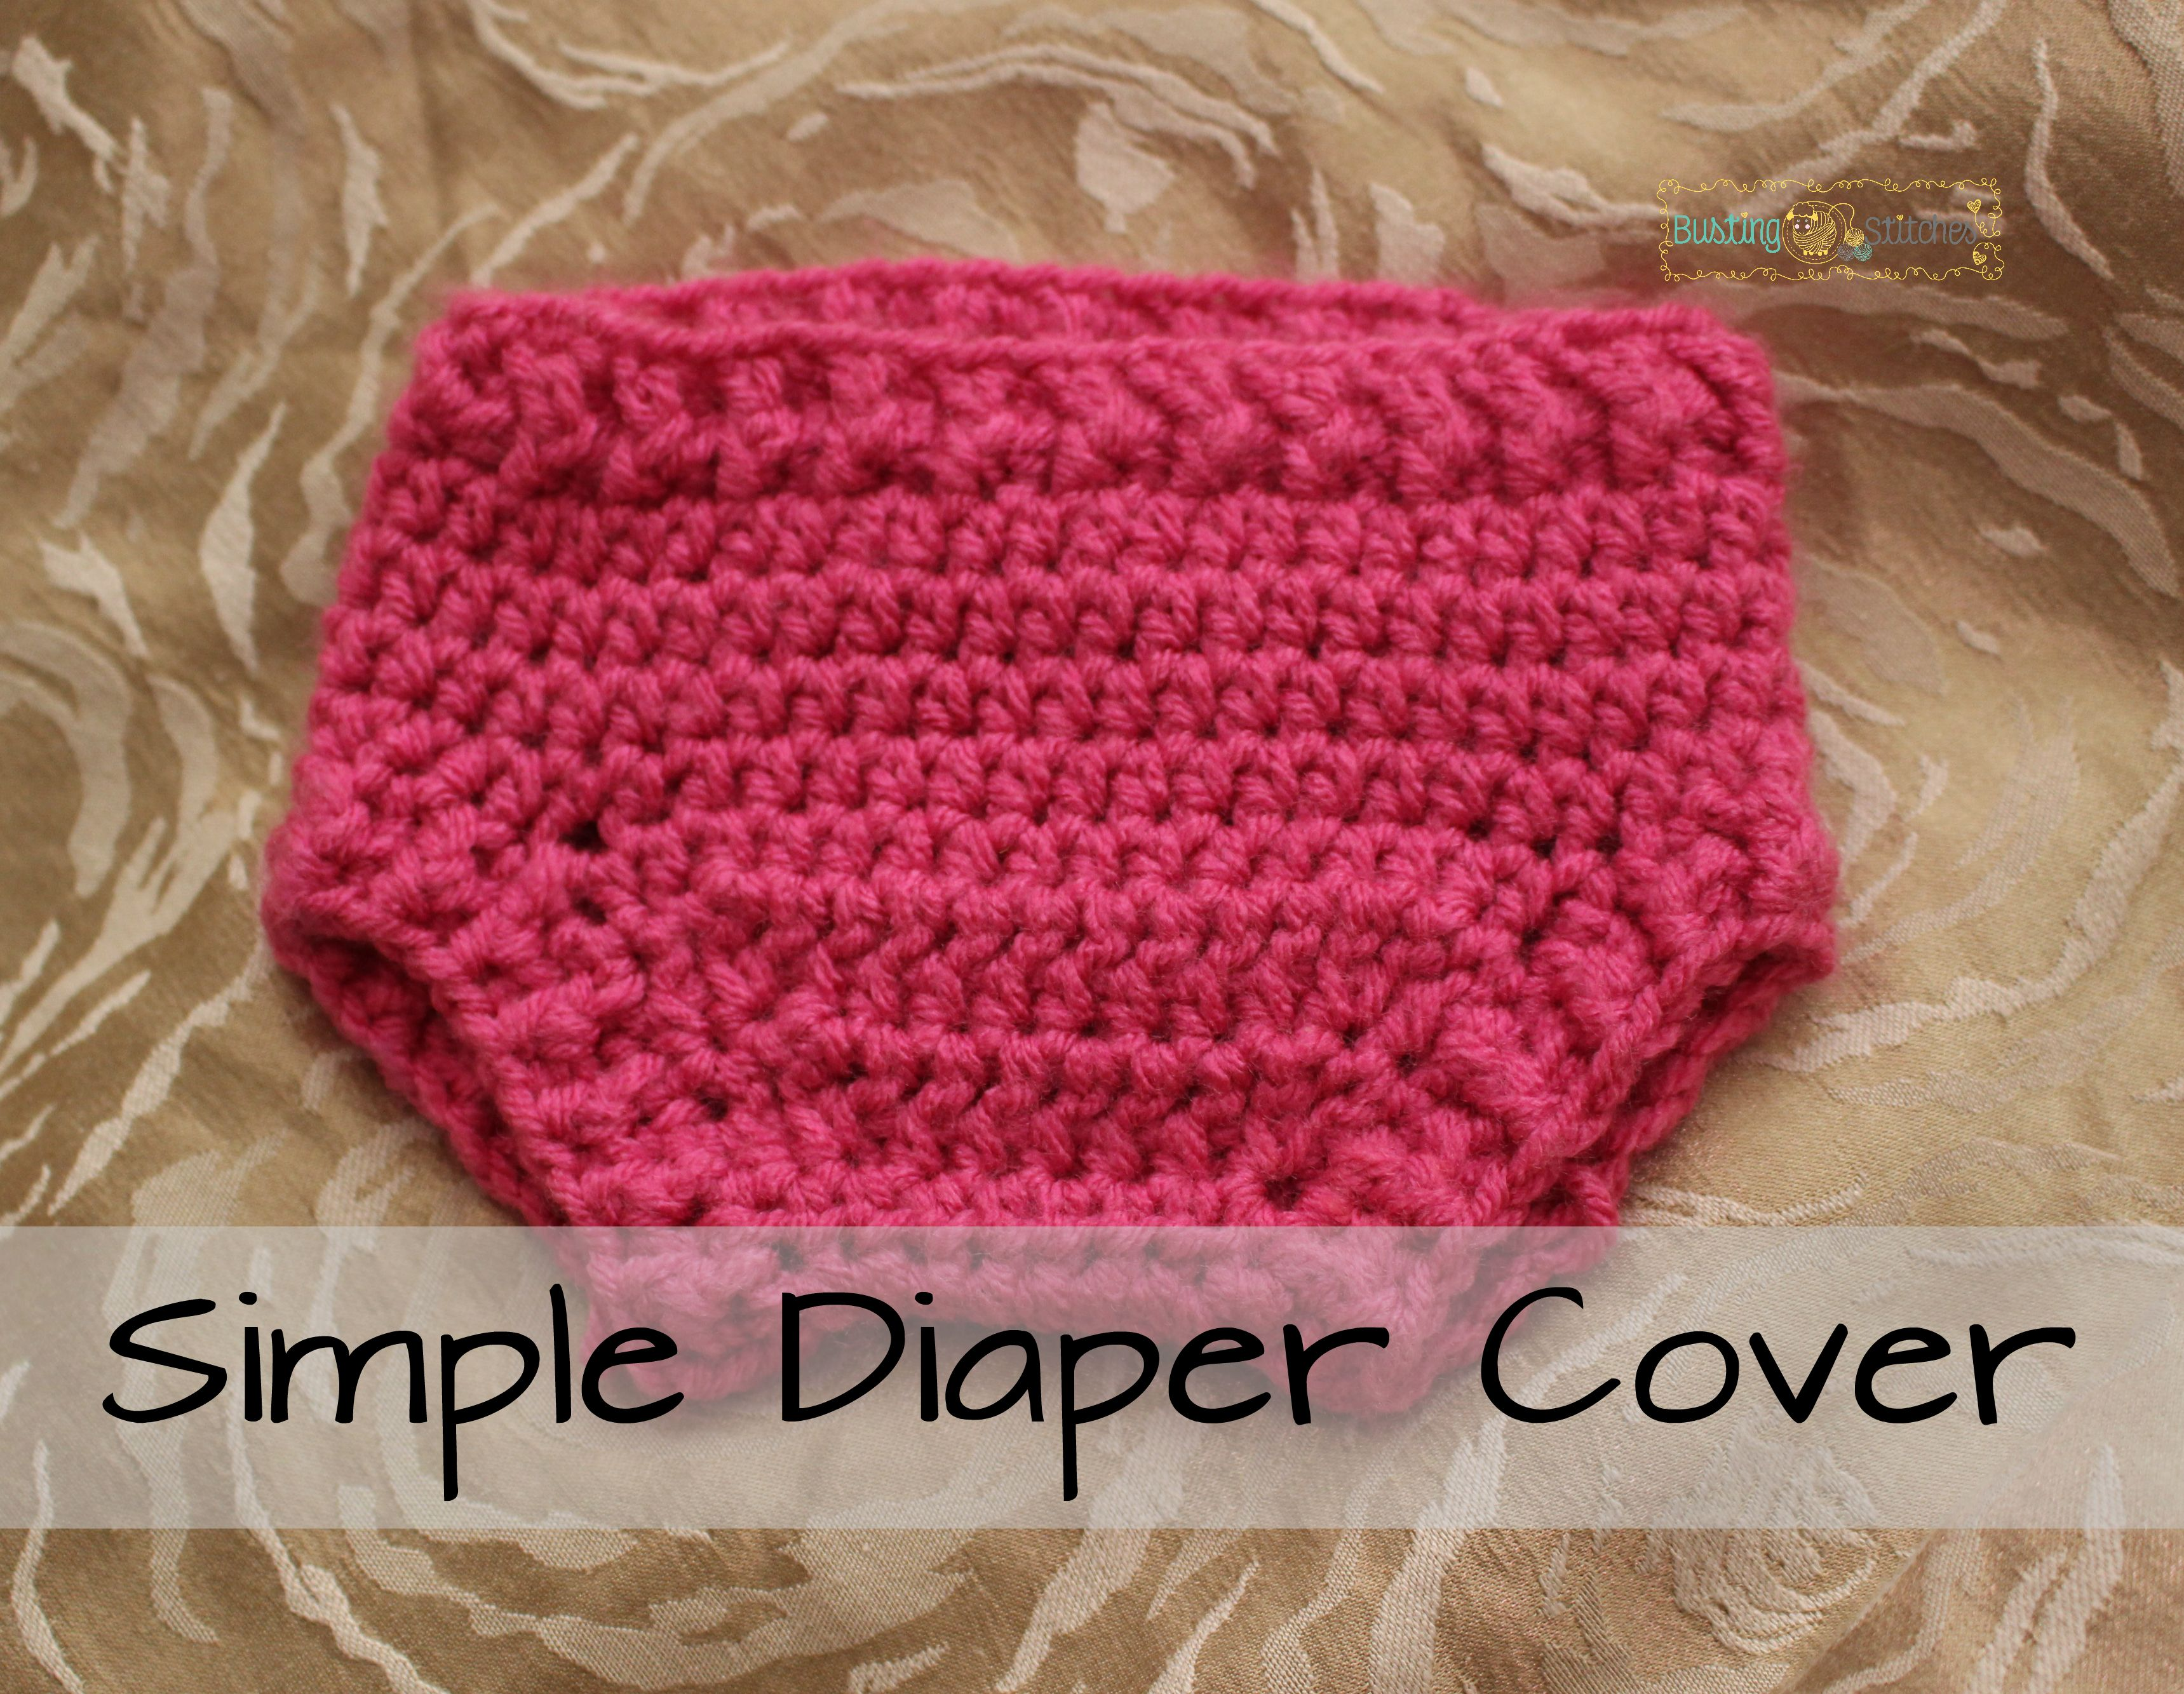 Simple Diaper Cover Web Patterns Amp Giveaways Crochet